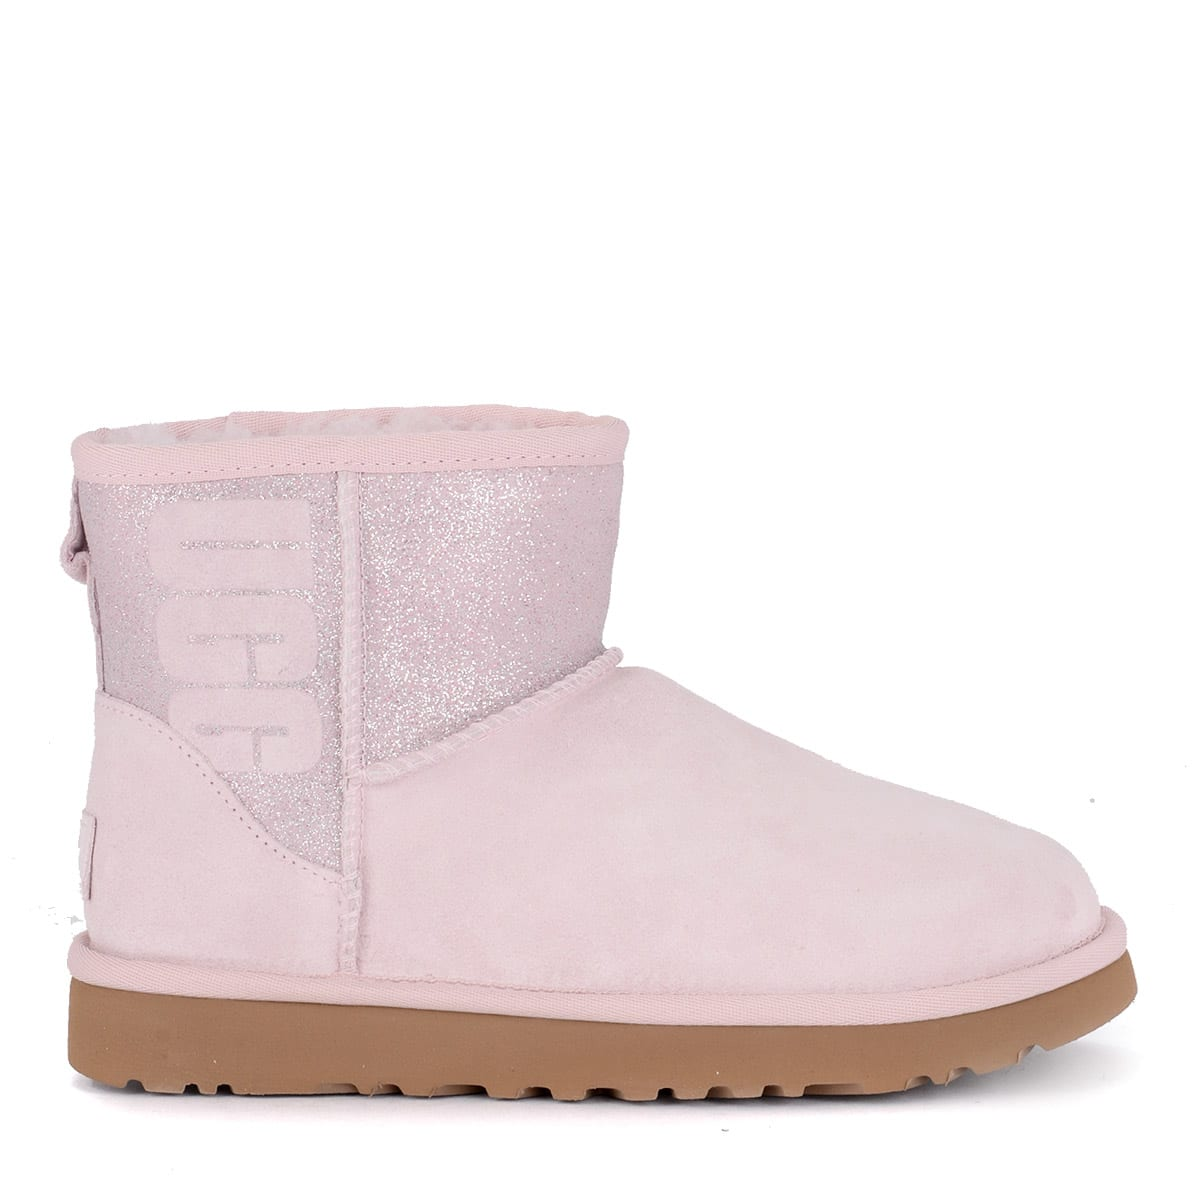 632f6df8ad8 Ugg Classic Mini Logo Sparkle Pink Suede And Glitter Ankle Boots